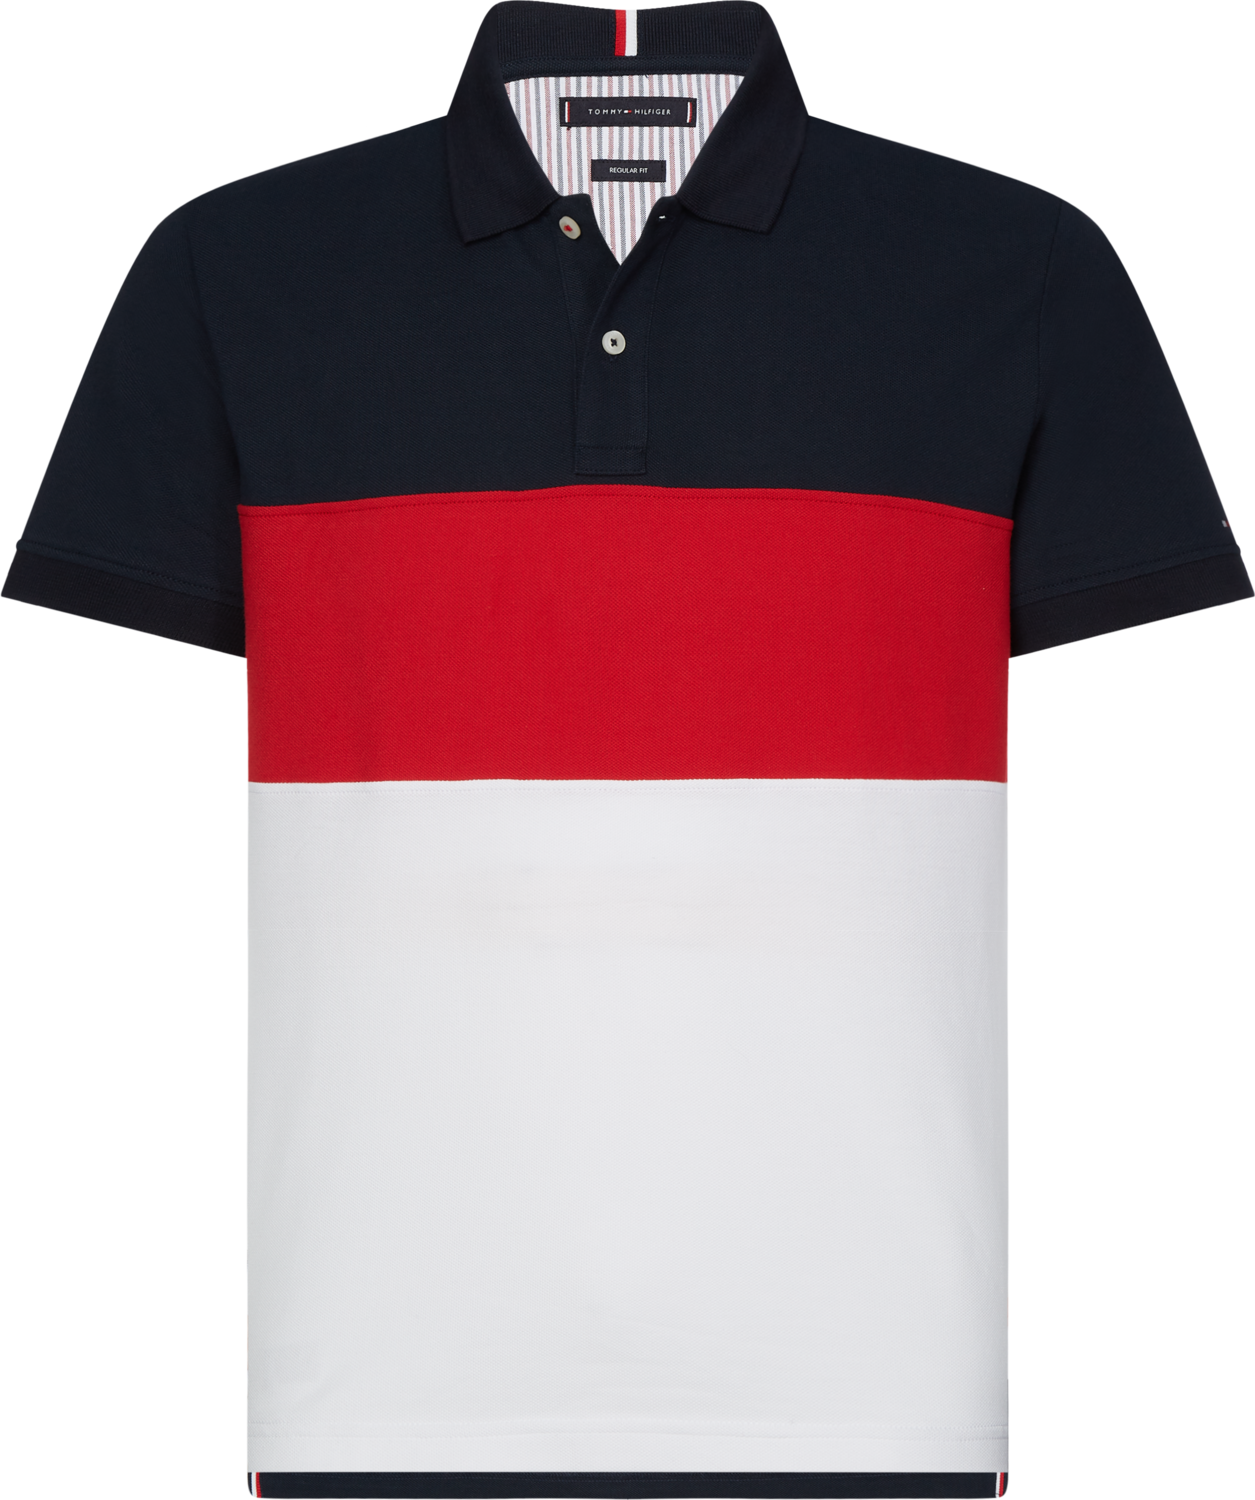 TOMMY COLORBLOCK REGULAR POLO DESERT SKY / PRIMARY RED / MULTI